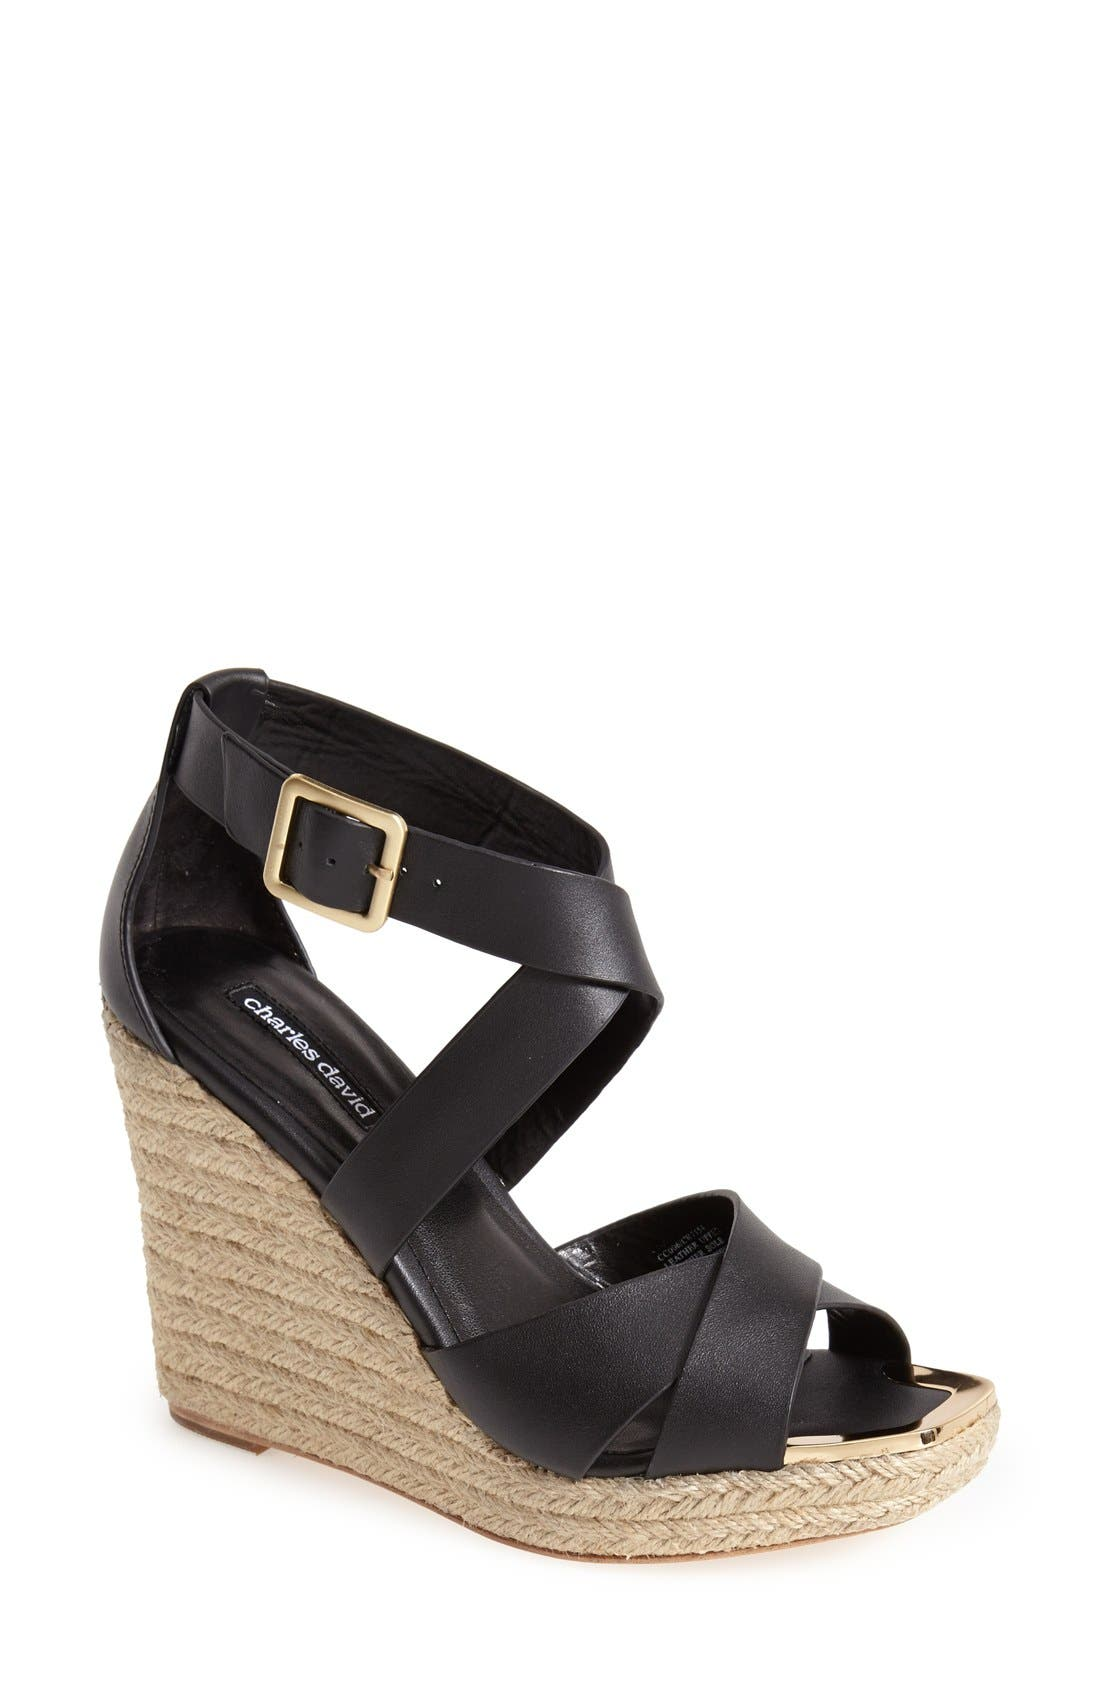 'Olympia' Wedge Sandal,                         Main,                         color, 001